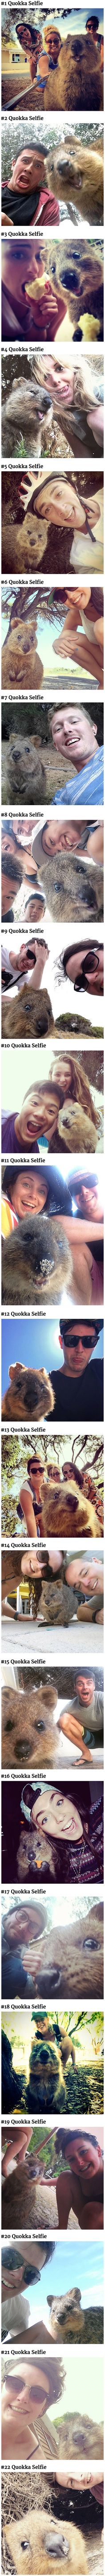 """The Quokka, an irrestistibly adorable and happy-looking rodent native to Australia, is now at the epicenter of what is possibly the cutest trend we've ever seen – the Quokka selfie. Due to their """"vulnerable"""" status in the IUCN Red List, handling these critters is a crime, but they are not afraid of humans and will readily approach them, so taking a selfie with one shouldn't be too difficult."""